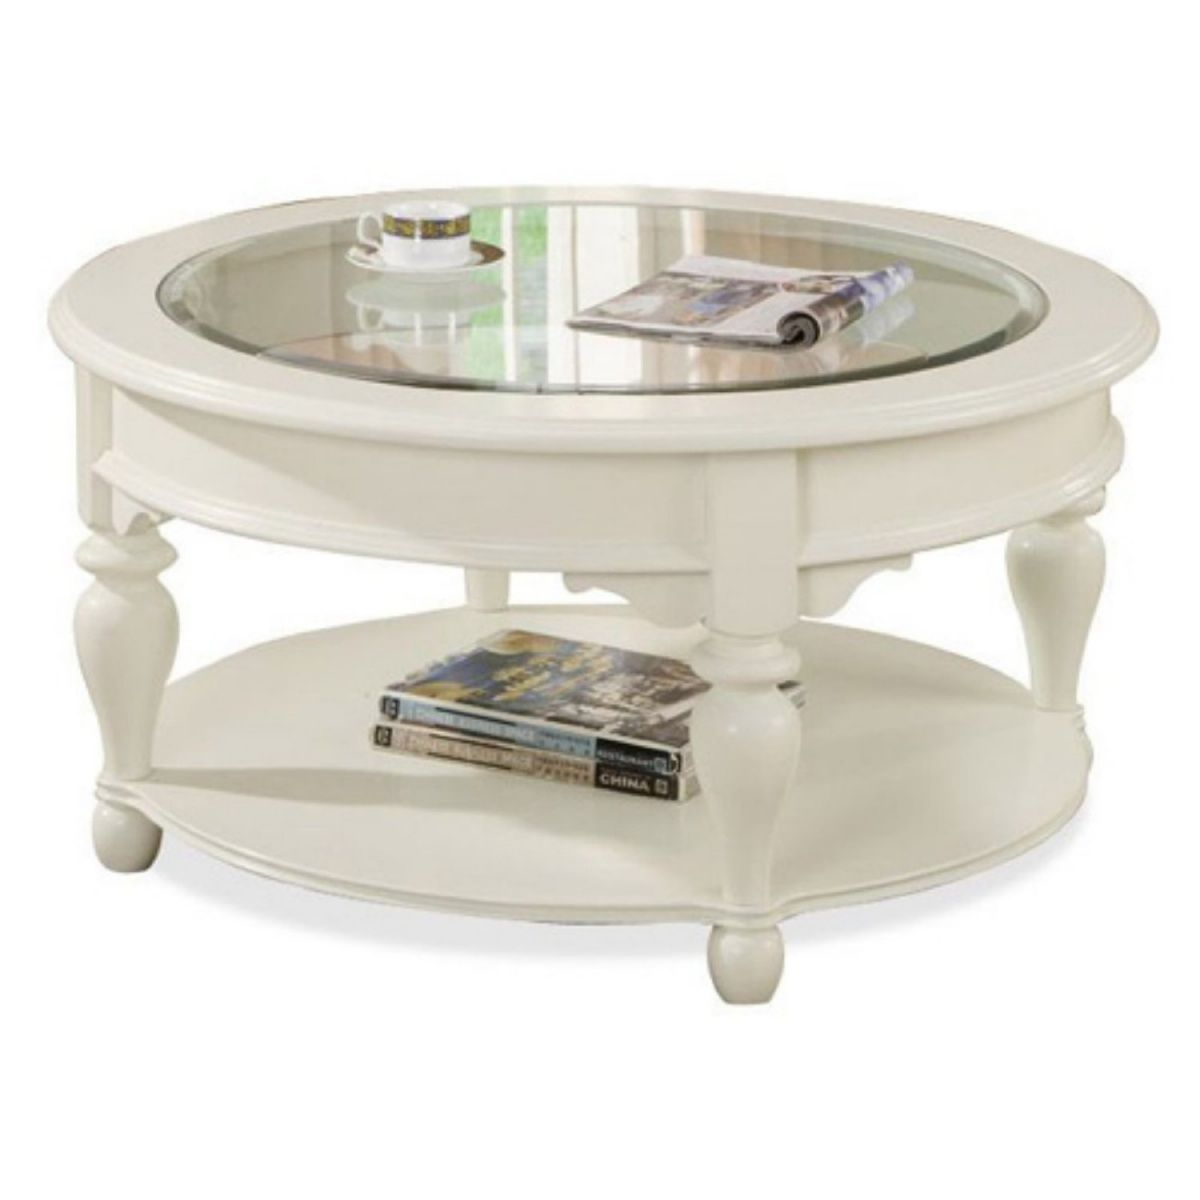 Illustration Of The Round Coffee Tables With Storage The Simple And Compact Furniture That